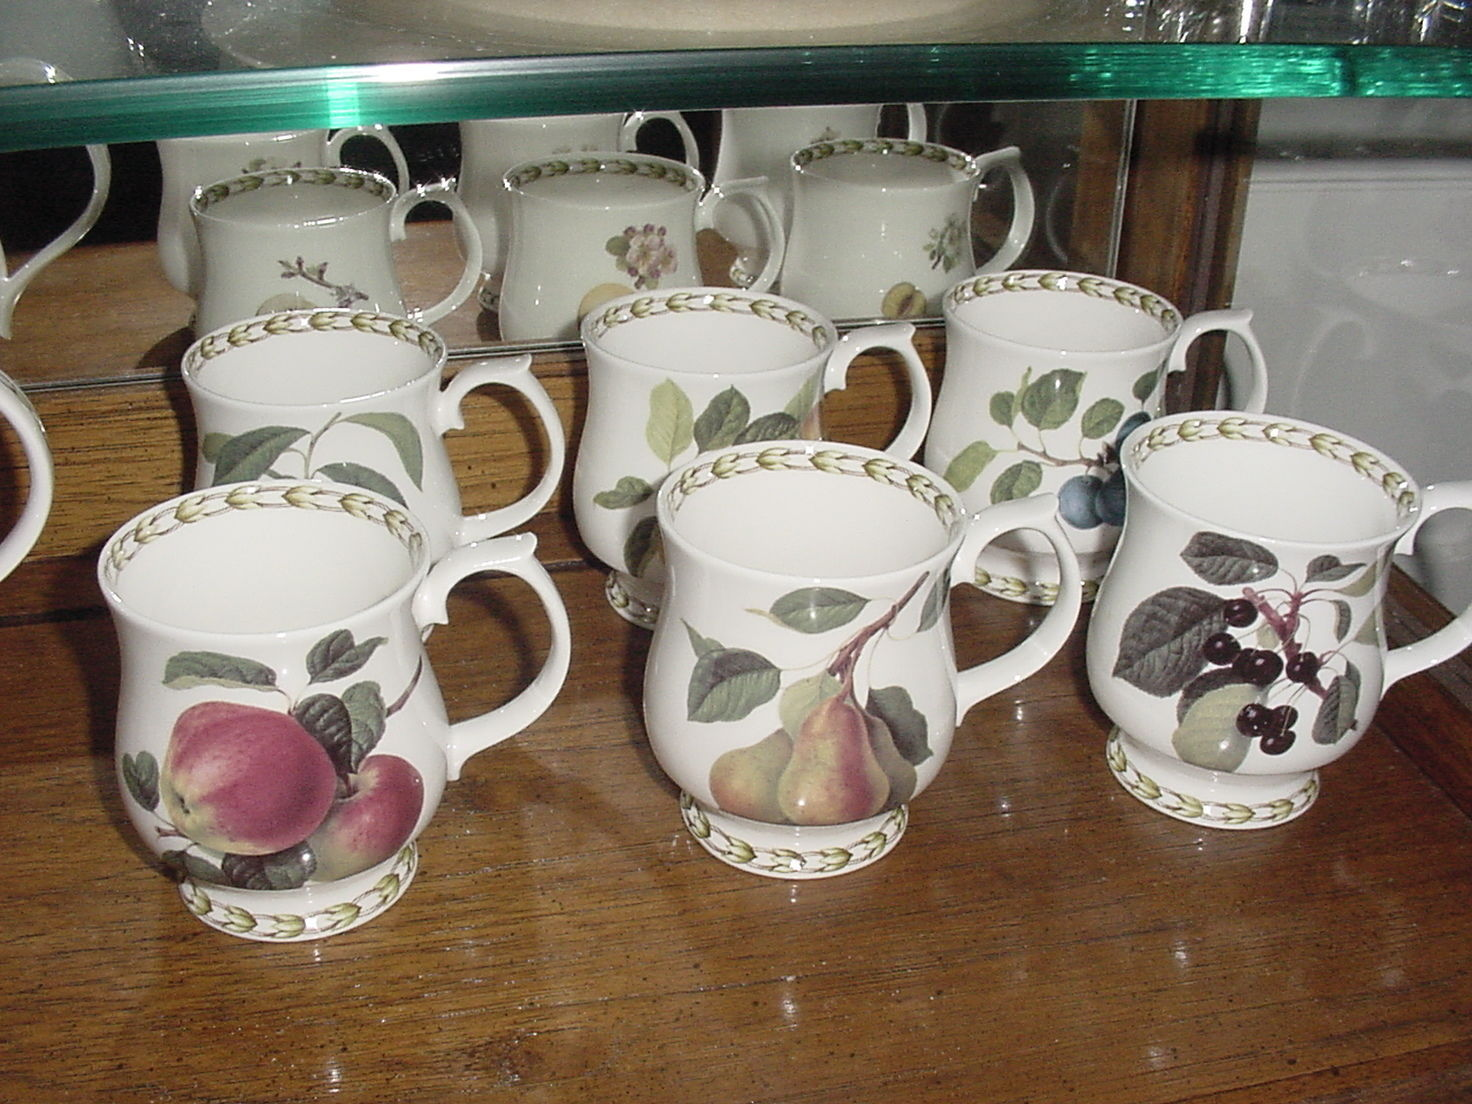 Queen's Collection Hooker's Fruit (England) Teapot and 6 Pedestal Mugs, Vintage/